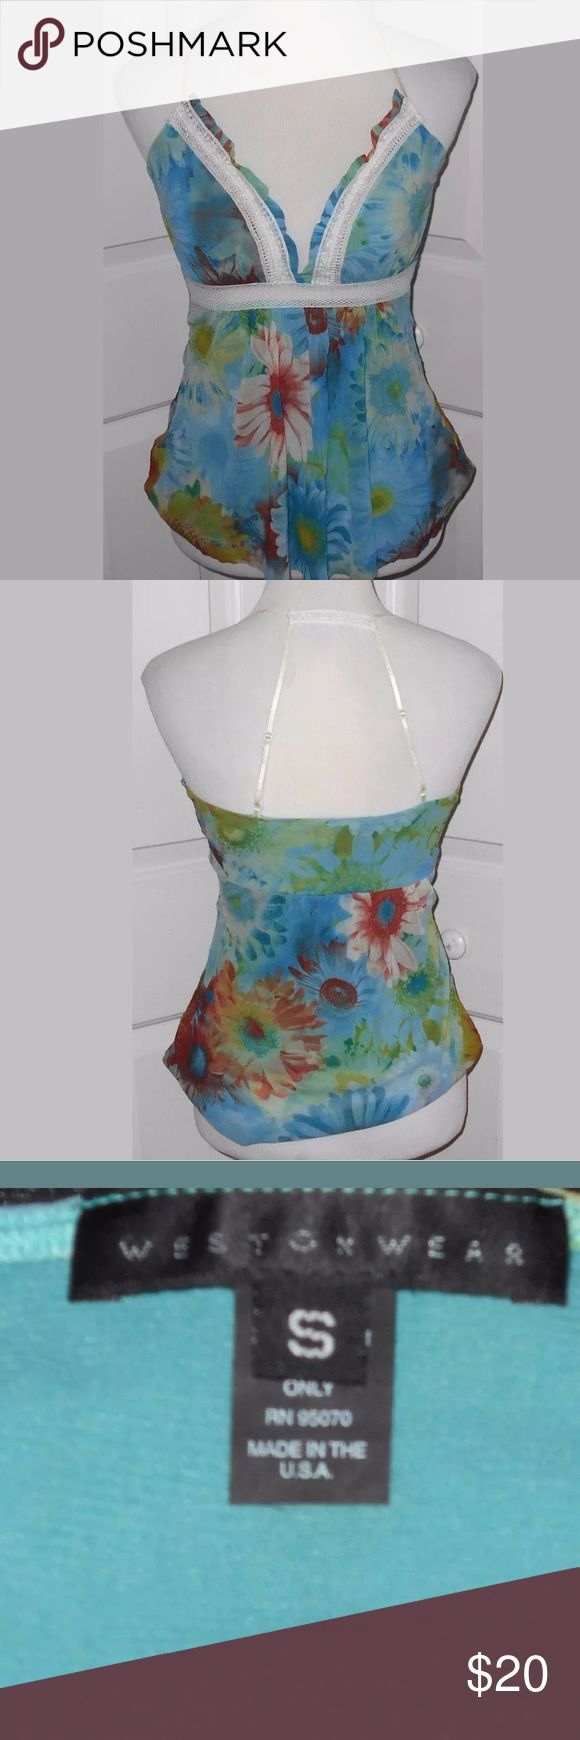 "Weston Wear Blue Floral Cami / Tank Top size S Weston Wear Blue Floral Cami / Tank Top with lace and mesh trim. The straps are adjustable. Size Small. 100% Nylon. Measures: 14"" pit to pit. Weston Wear Tops Camisoles"